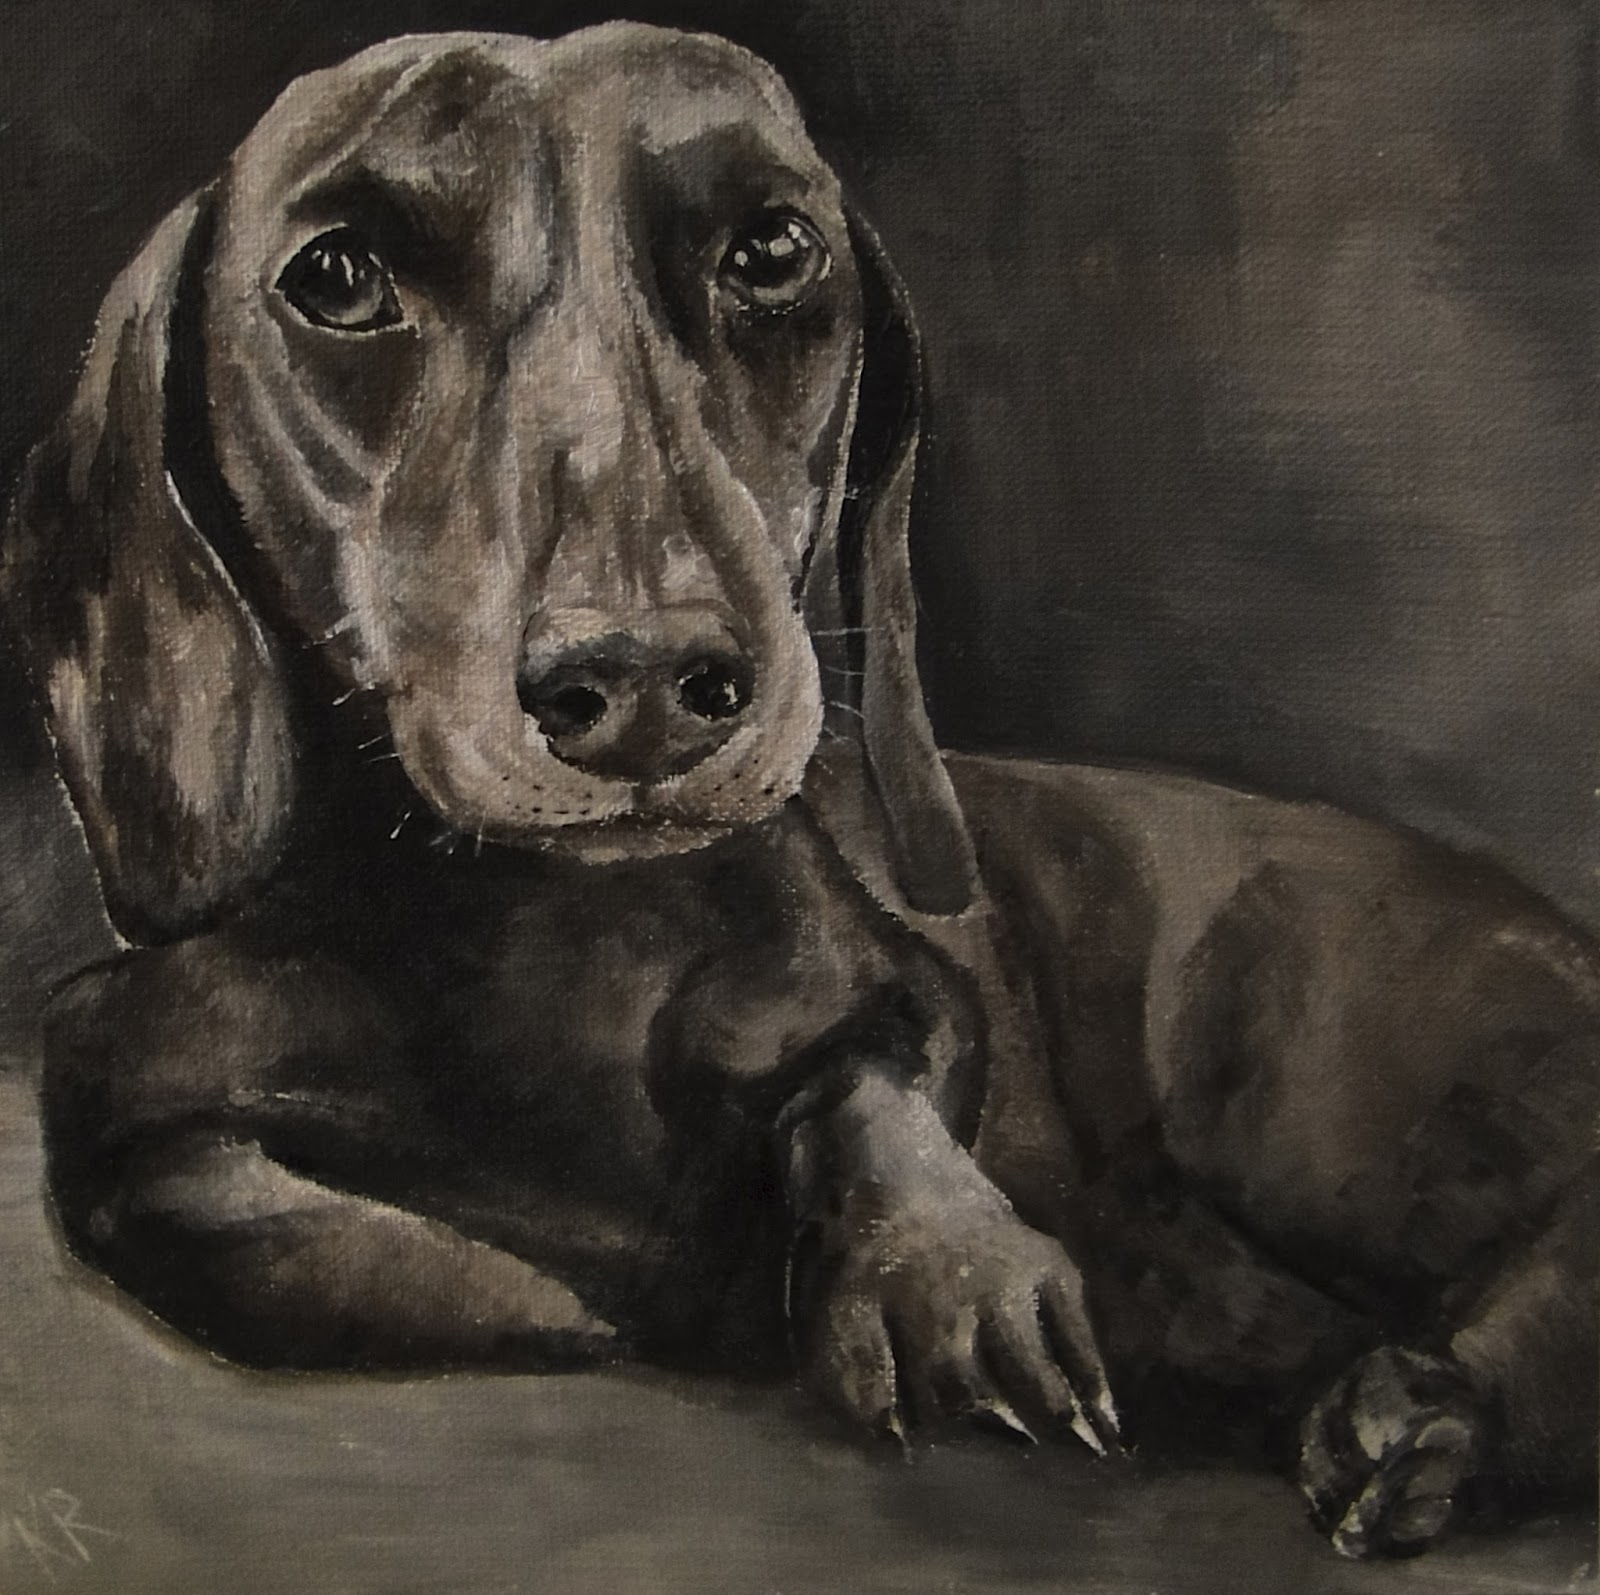 oil painting of a dachshund in black and white, after Landseer, a pet portrait by Karen, Devon